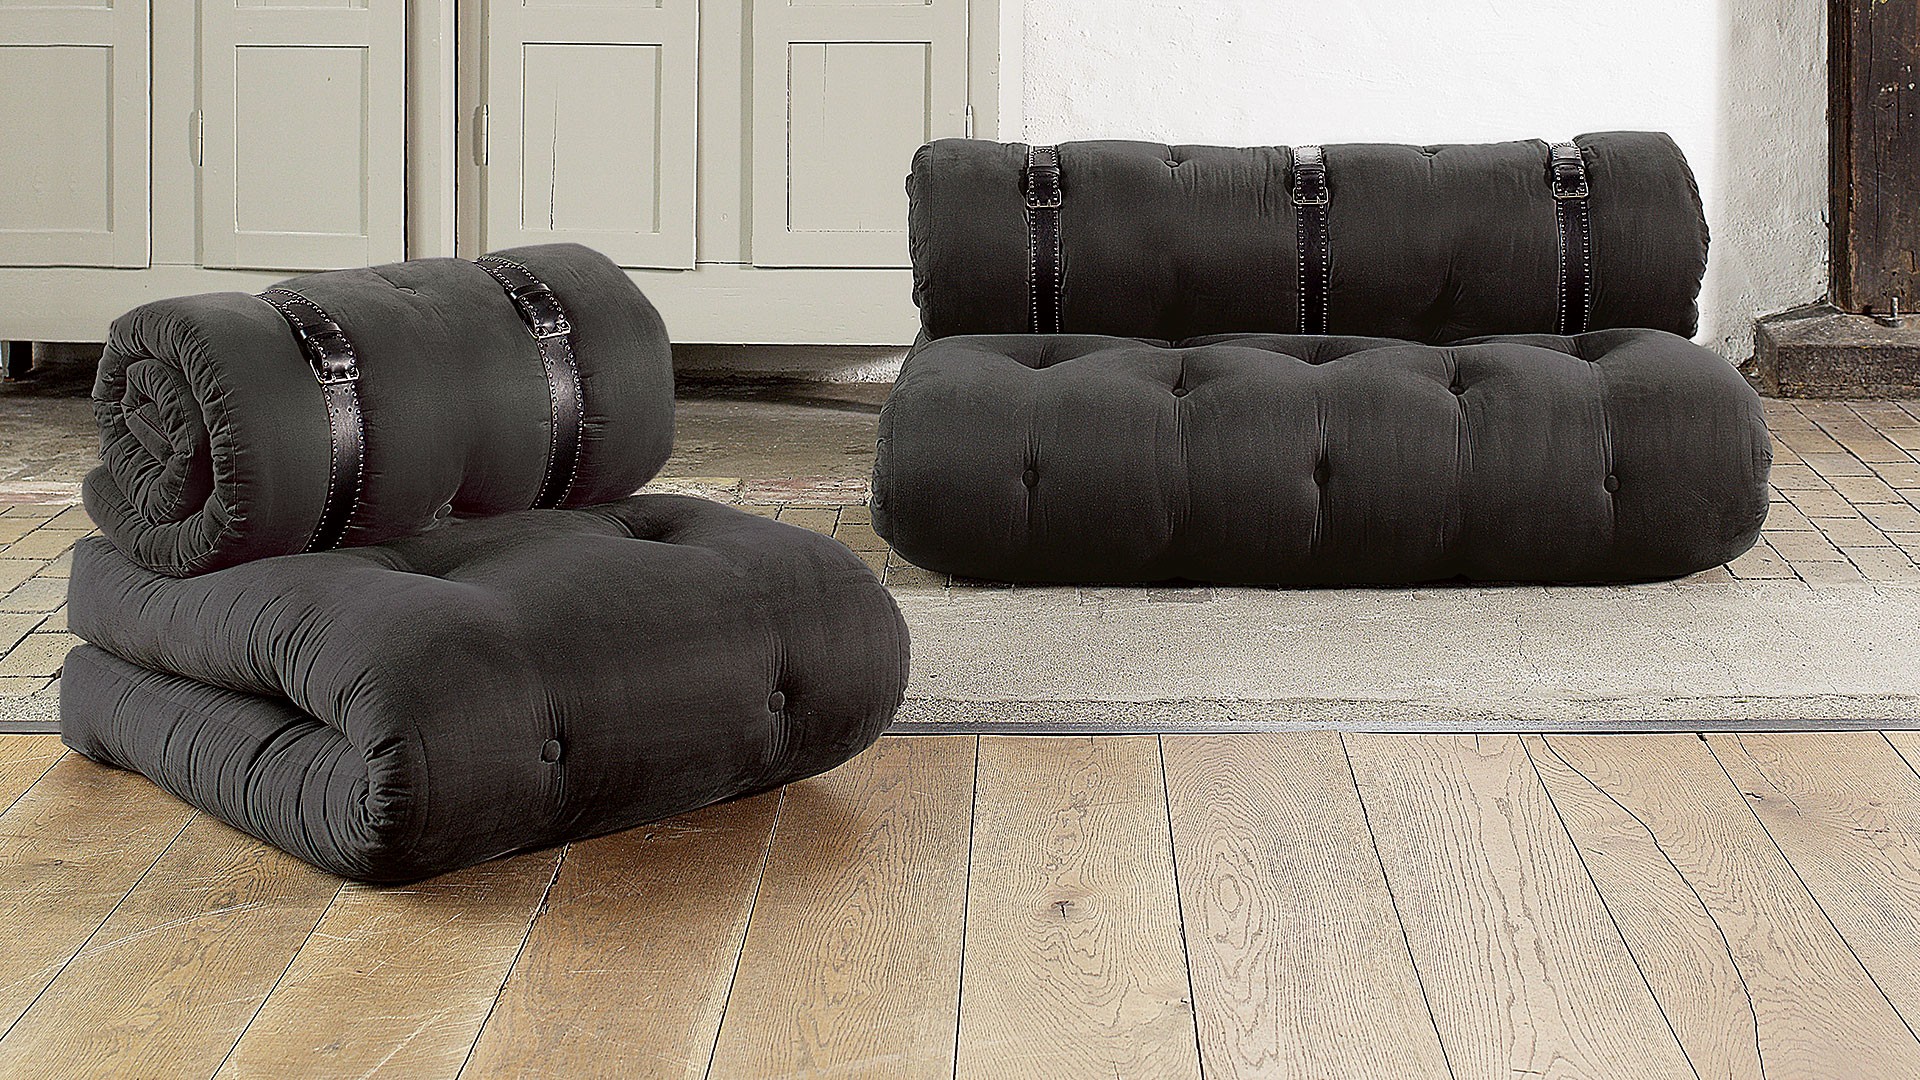 futon schlafsofa sasaya. Black Bedroom Furniture Sets. Home Design Ideas